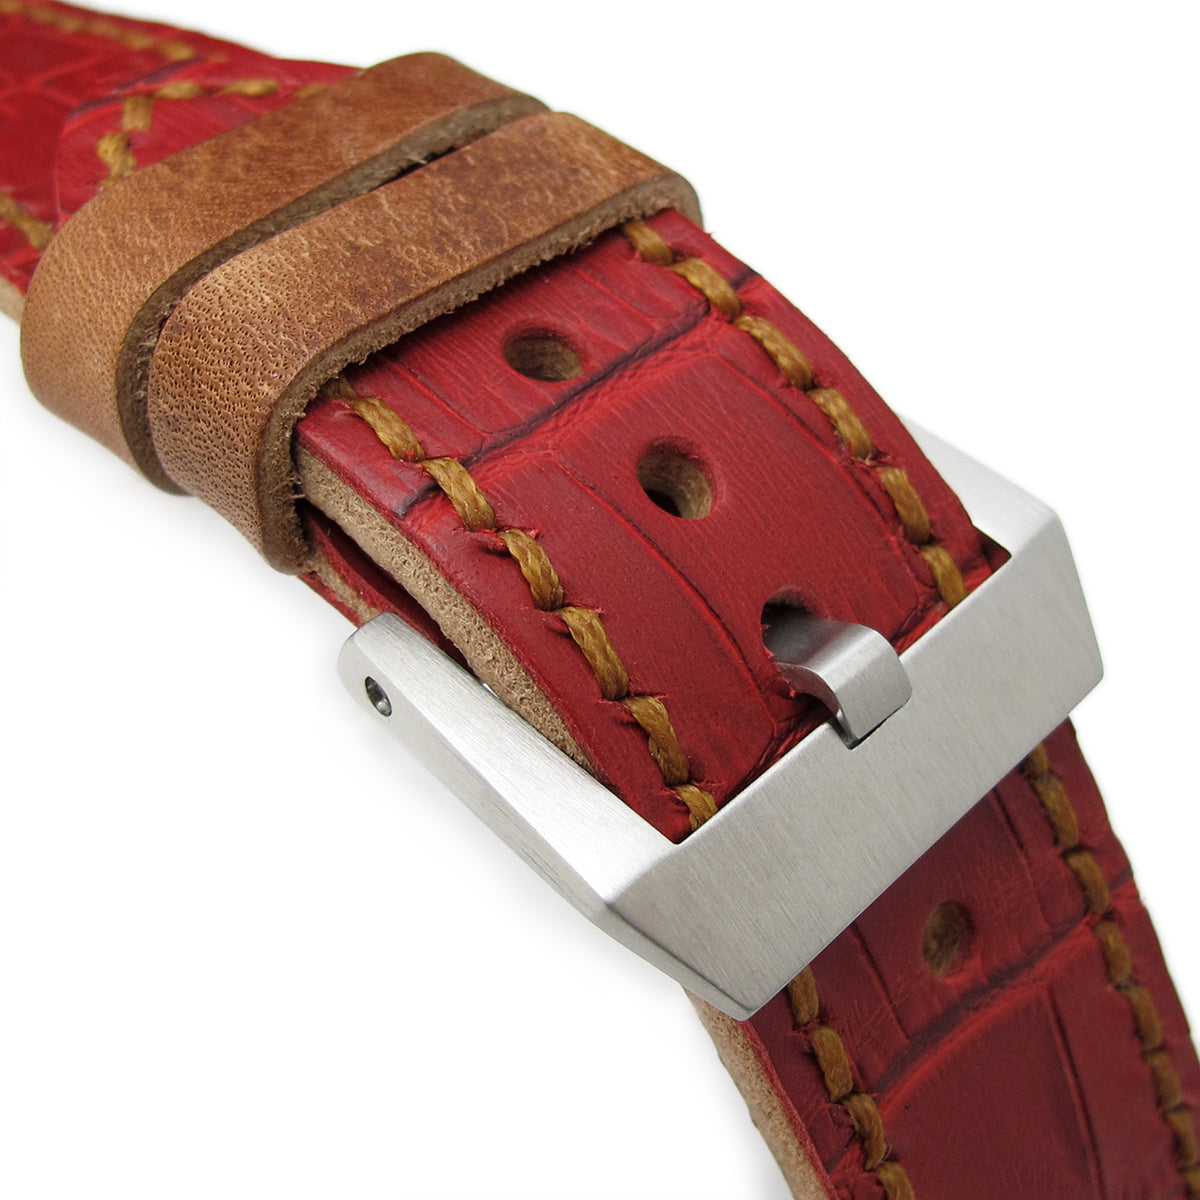 24mm MiLTAT Antipode Watch Strap Matte Red CrocoCalf in Tan Hand Stitches Strapcode Watch Bands